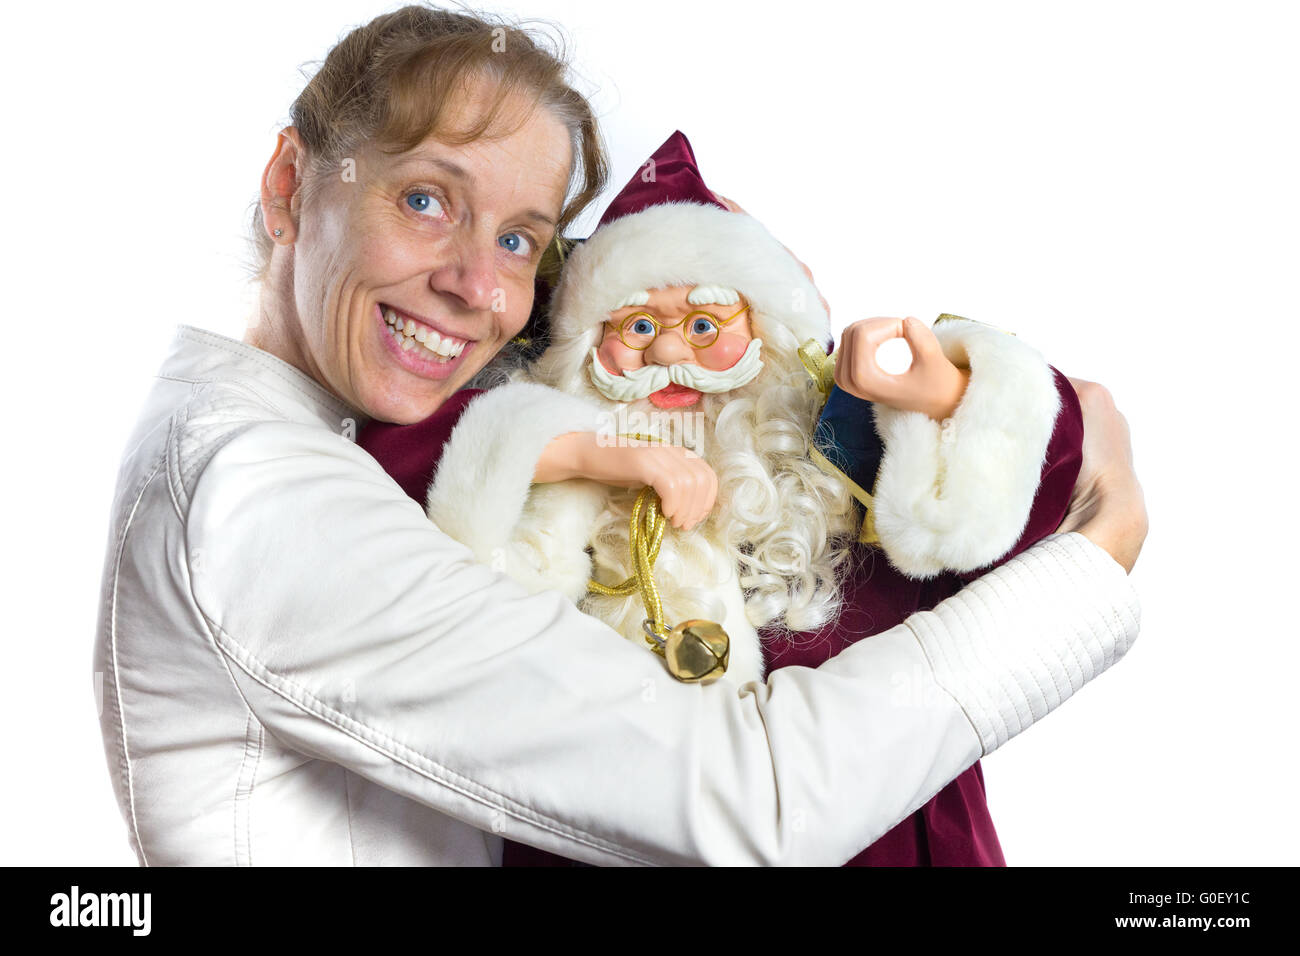 Caucasian woman embracing model of Santa Claus - Stock Image